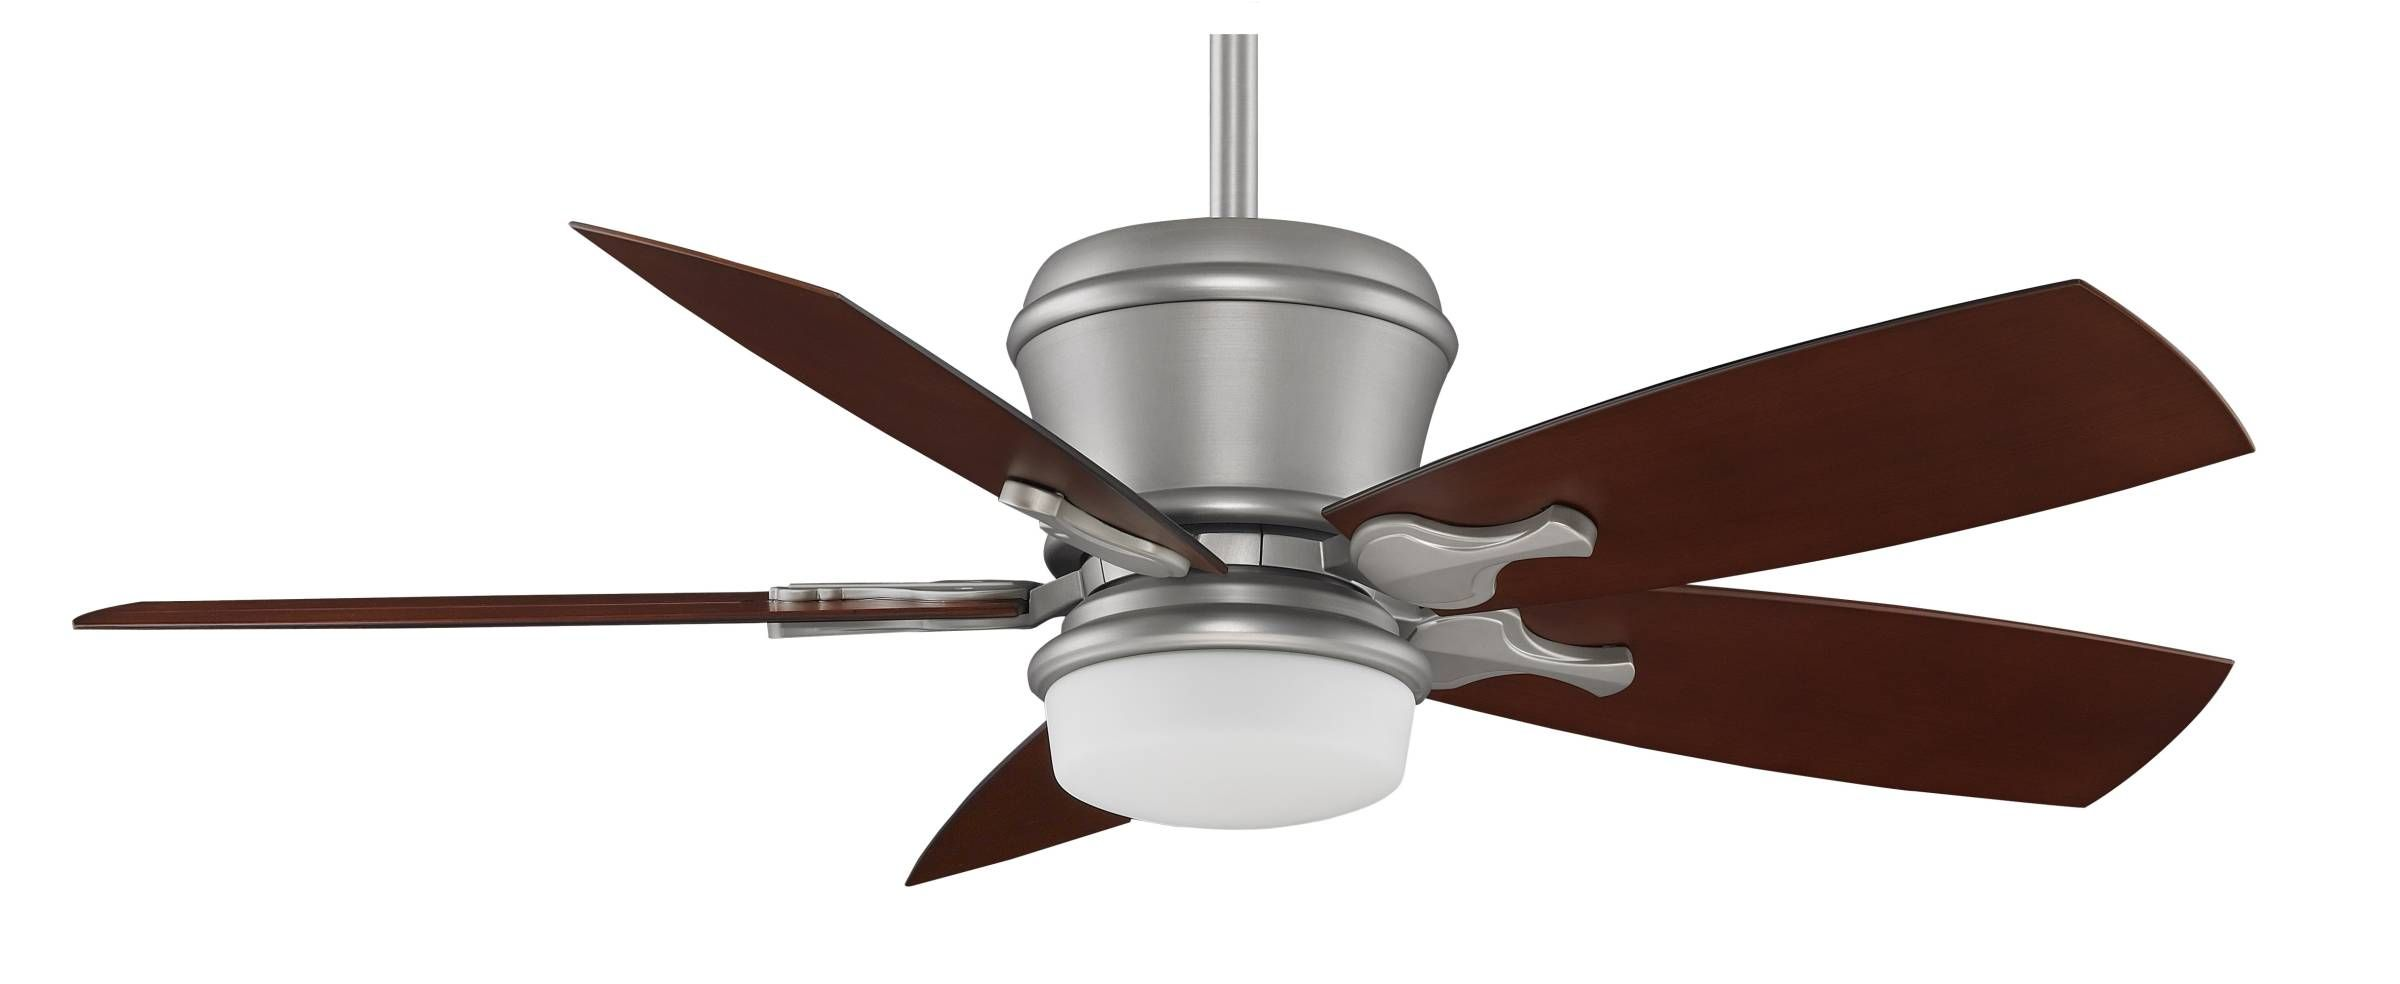 fanimation sandella mad3260sn bpw20mh airflow rating 5412 cfm cubic feet per minute super energy efficient ceiling fan simple outdoor by minka aire fans